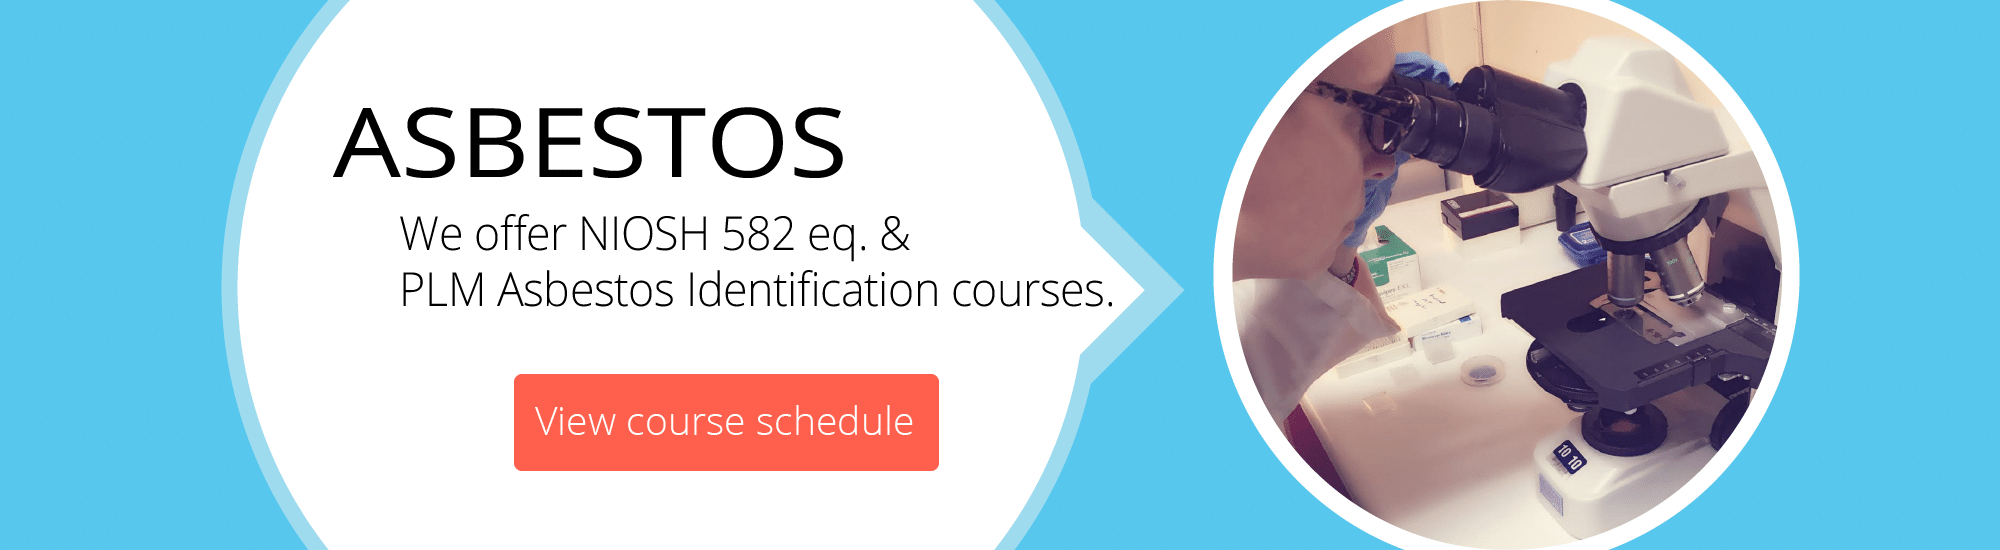 Asbestos - We offer NIOSH 582 eq. &  PLM Asbestos Identification courses. View course schedule.